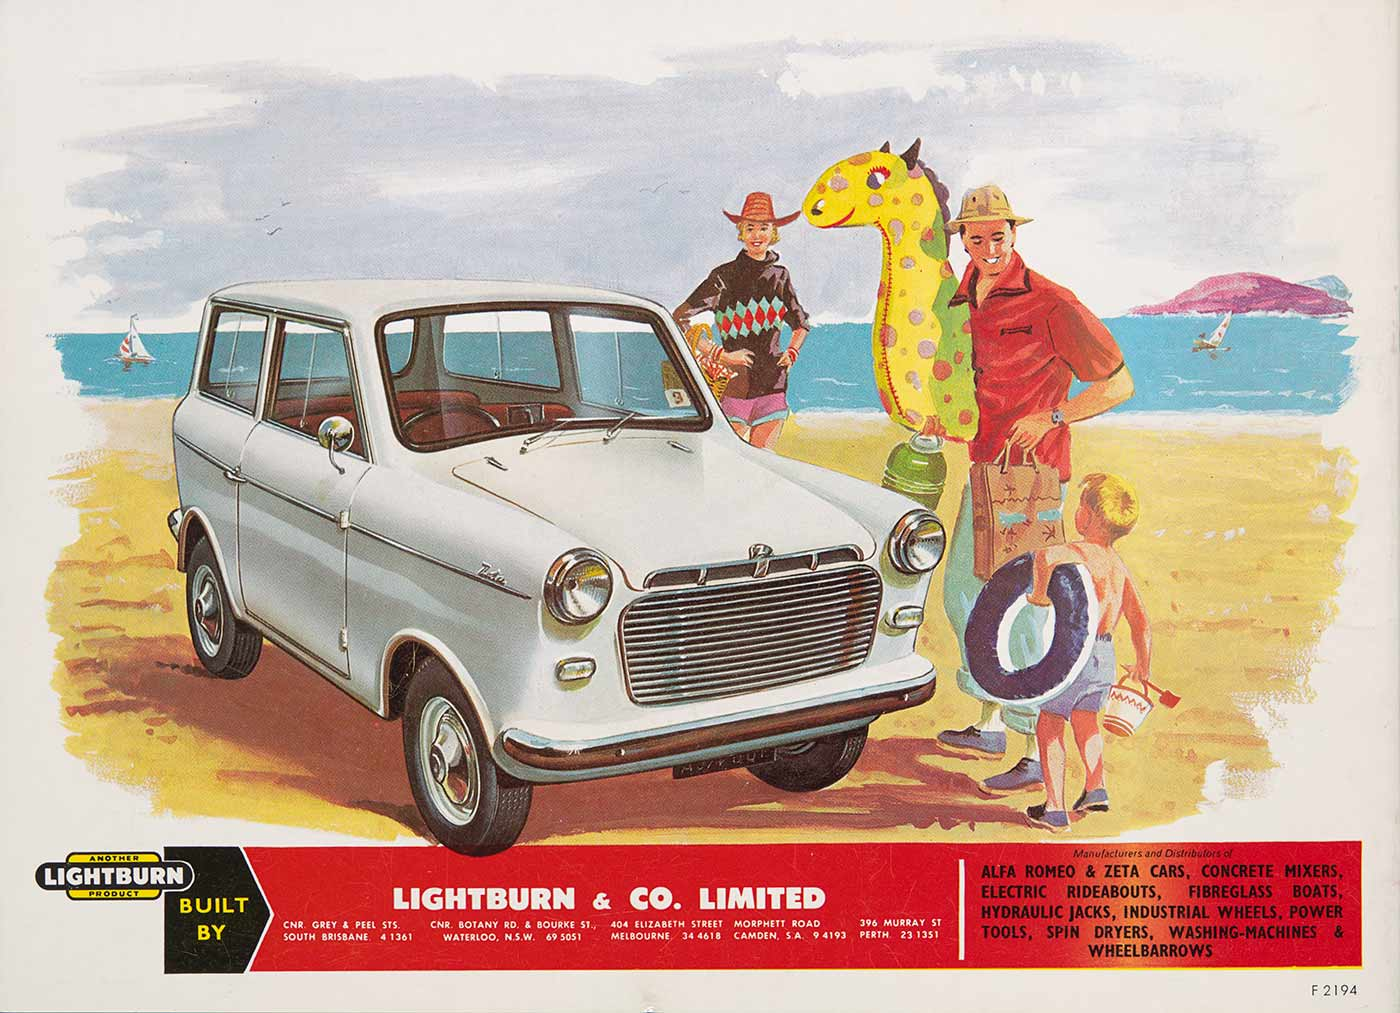 A coloured advertising brochure cover featuring a small white motor car, a woman, and man and child holding inflatable toys in a beach setting.